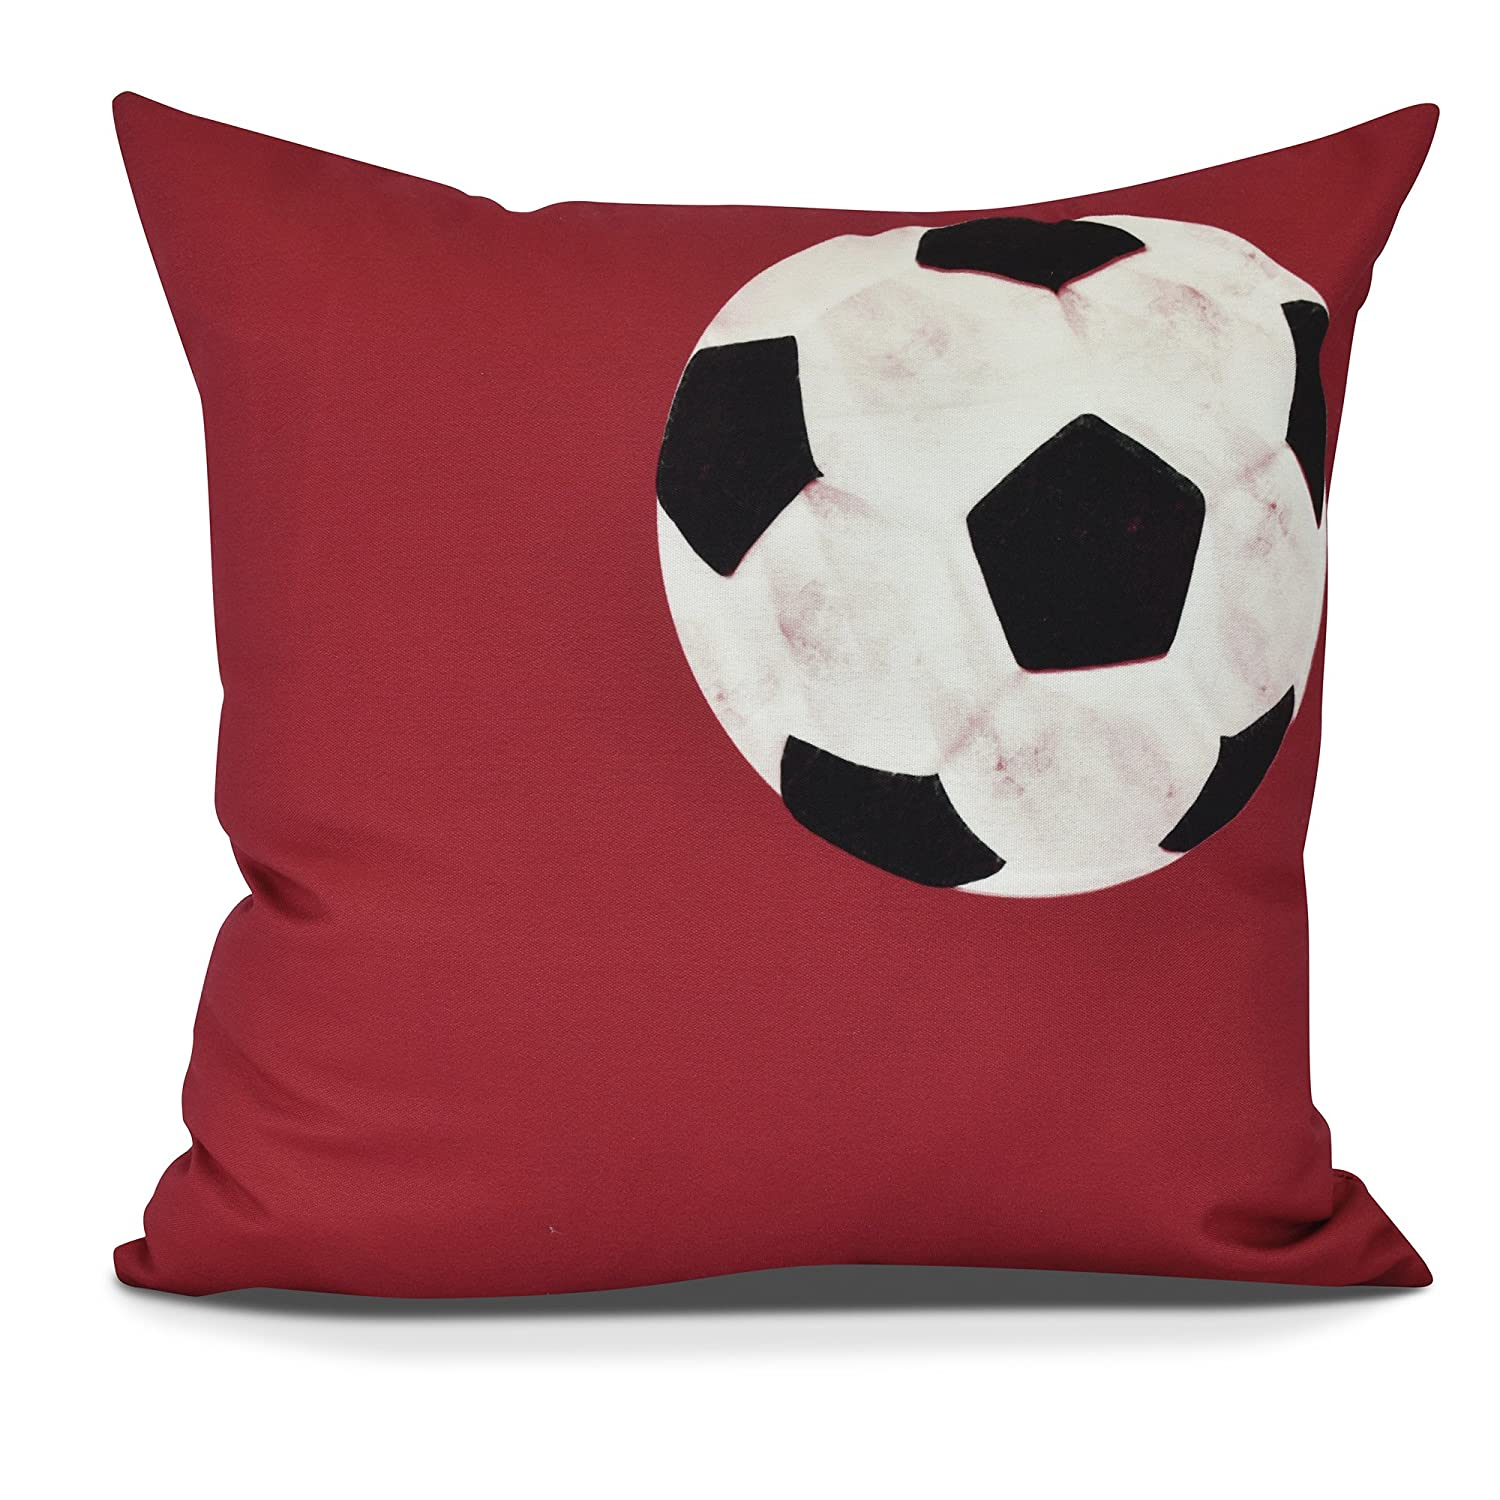 E by design PG880RE10-18 Soccer Ball Decorative Geometric Throw Pillow 18 Red